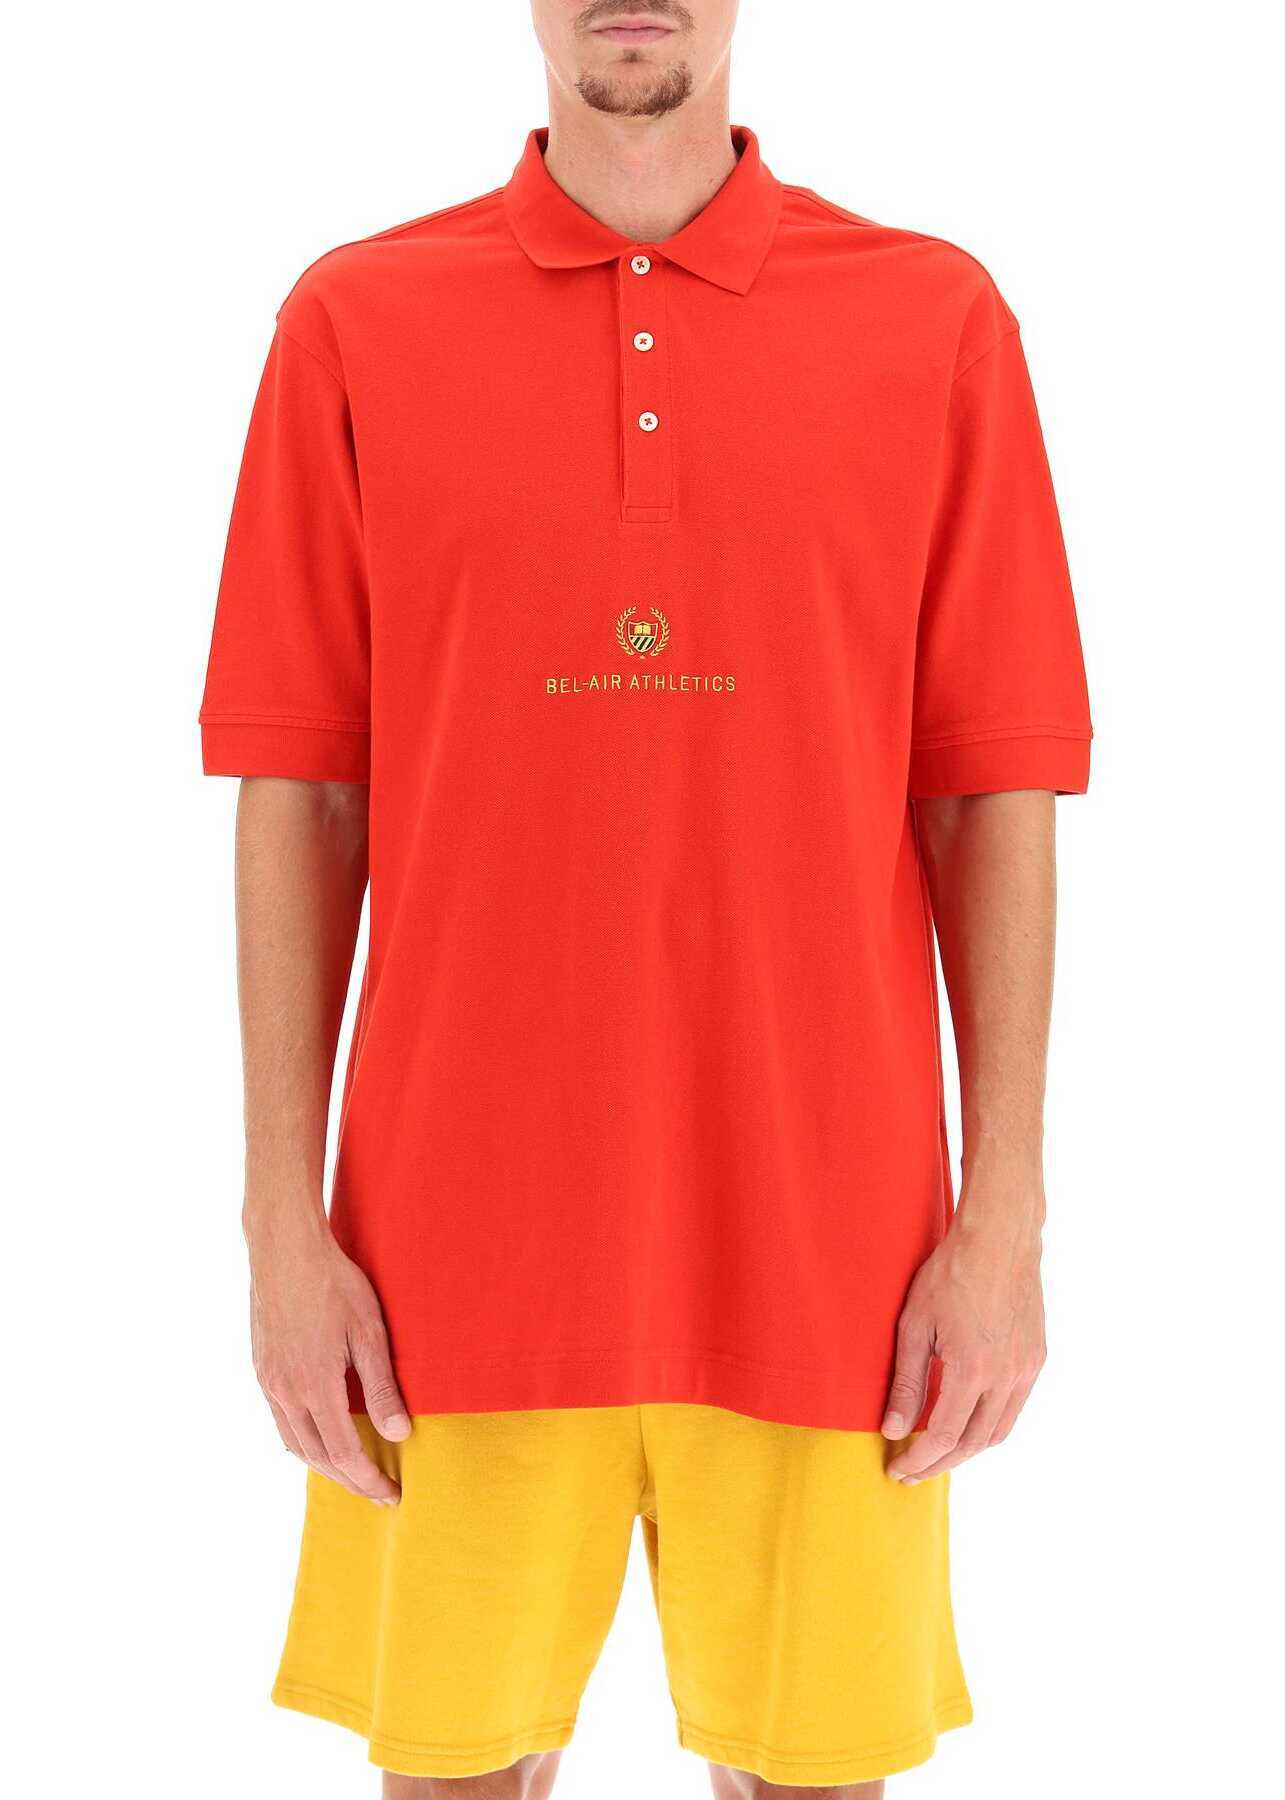 Bel-Air Athletics Academy Crest Polo Shirt 31BELM702 216754 RED image0